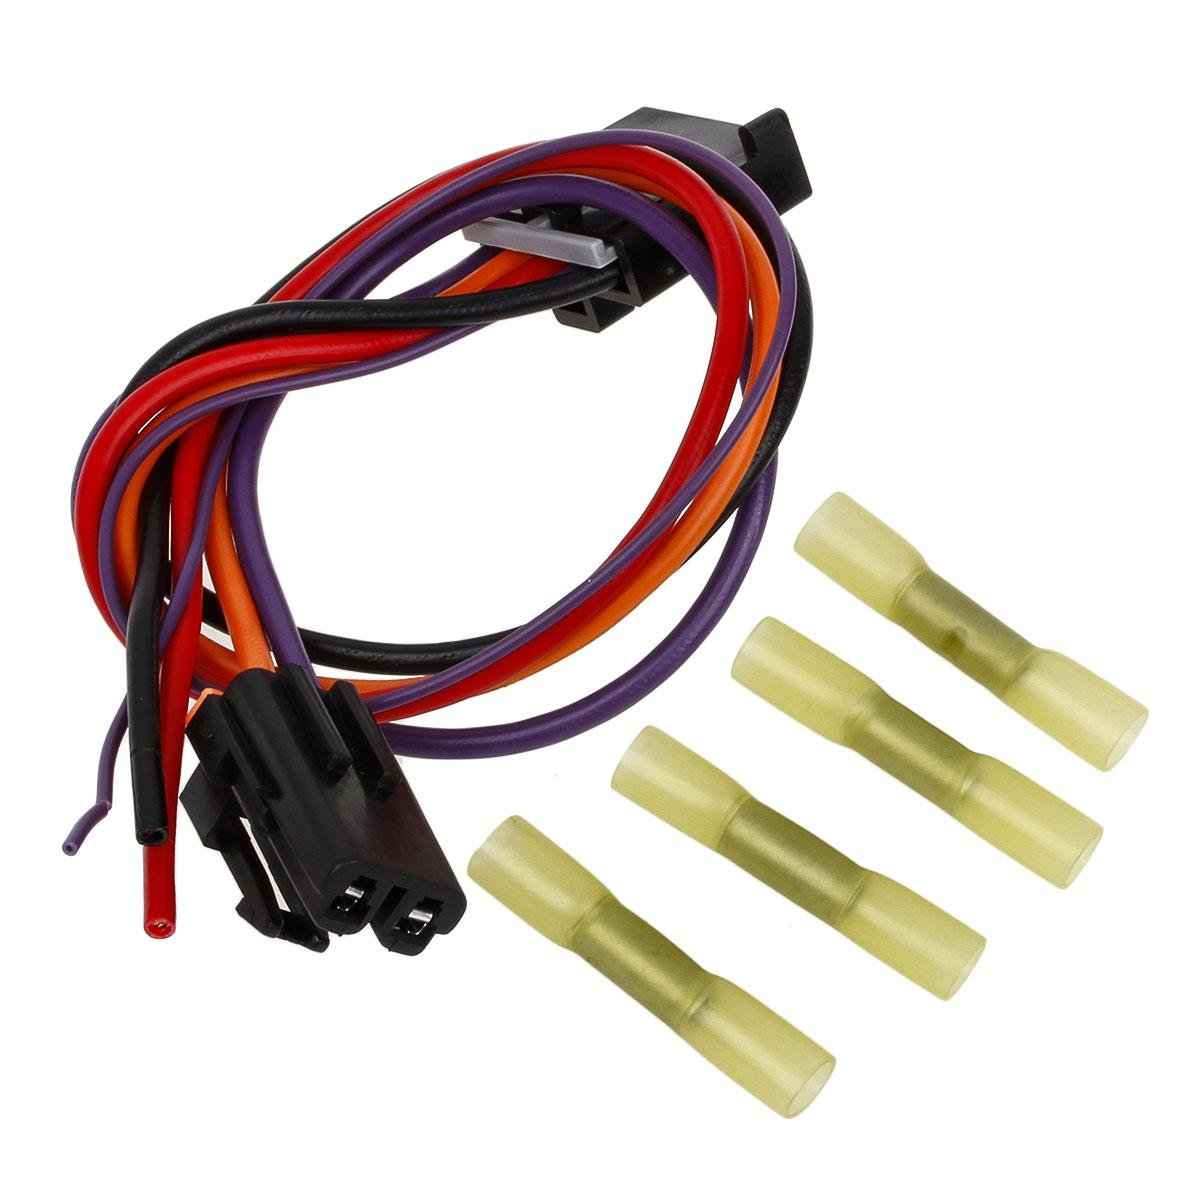 Partssquare Hvac Blower Motor Resistor Complete Kit With 04 Envoy Wiring Diagram Harness 15850268 22754990 Ru359 Replacement For Chevy Silverado Tahoe Suburban